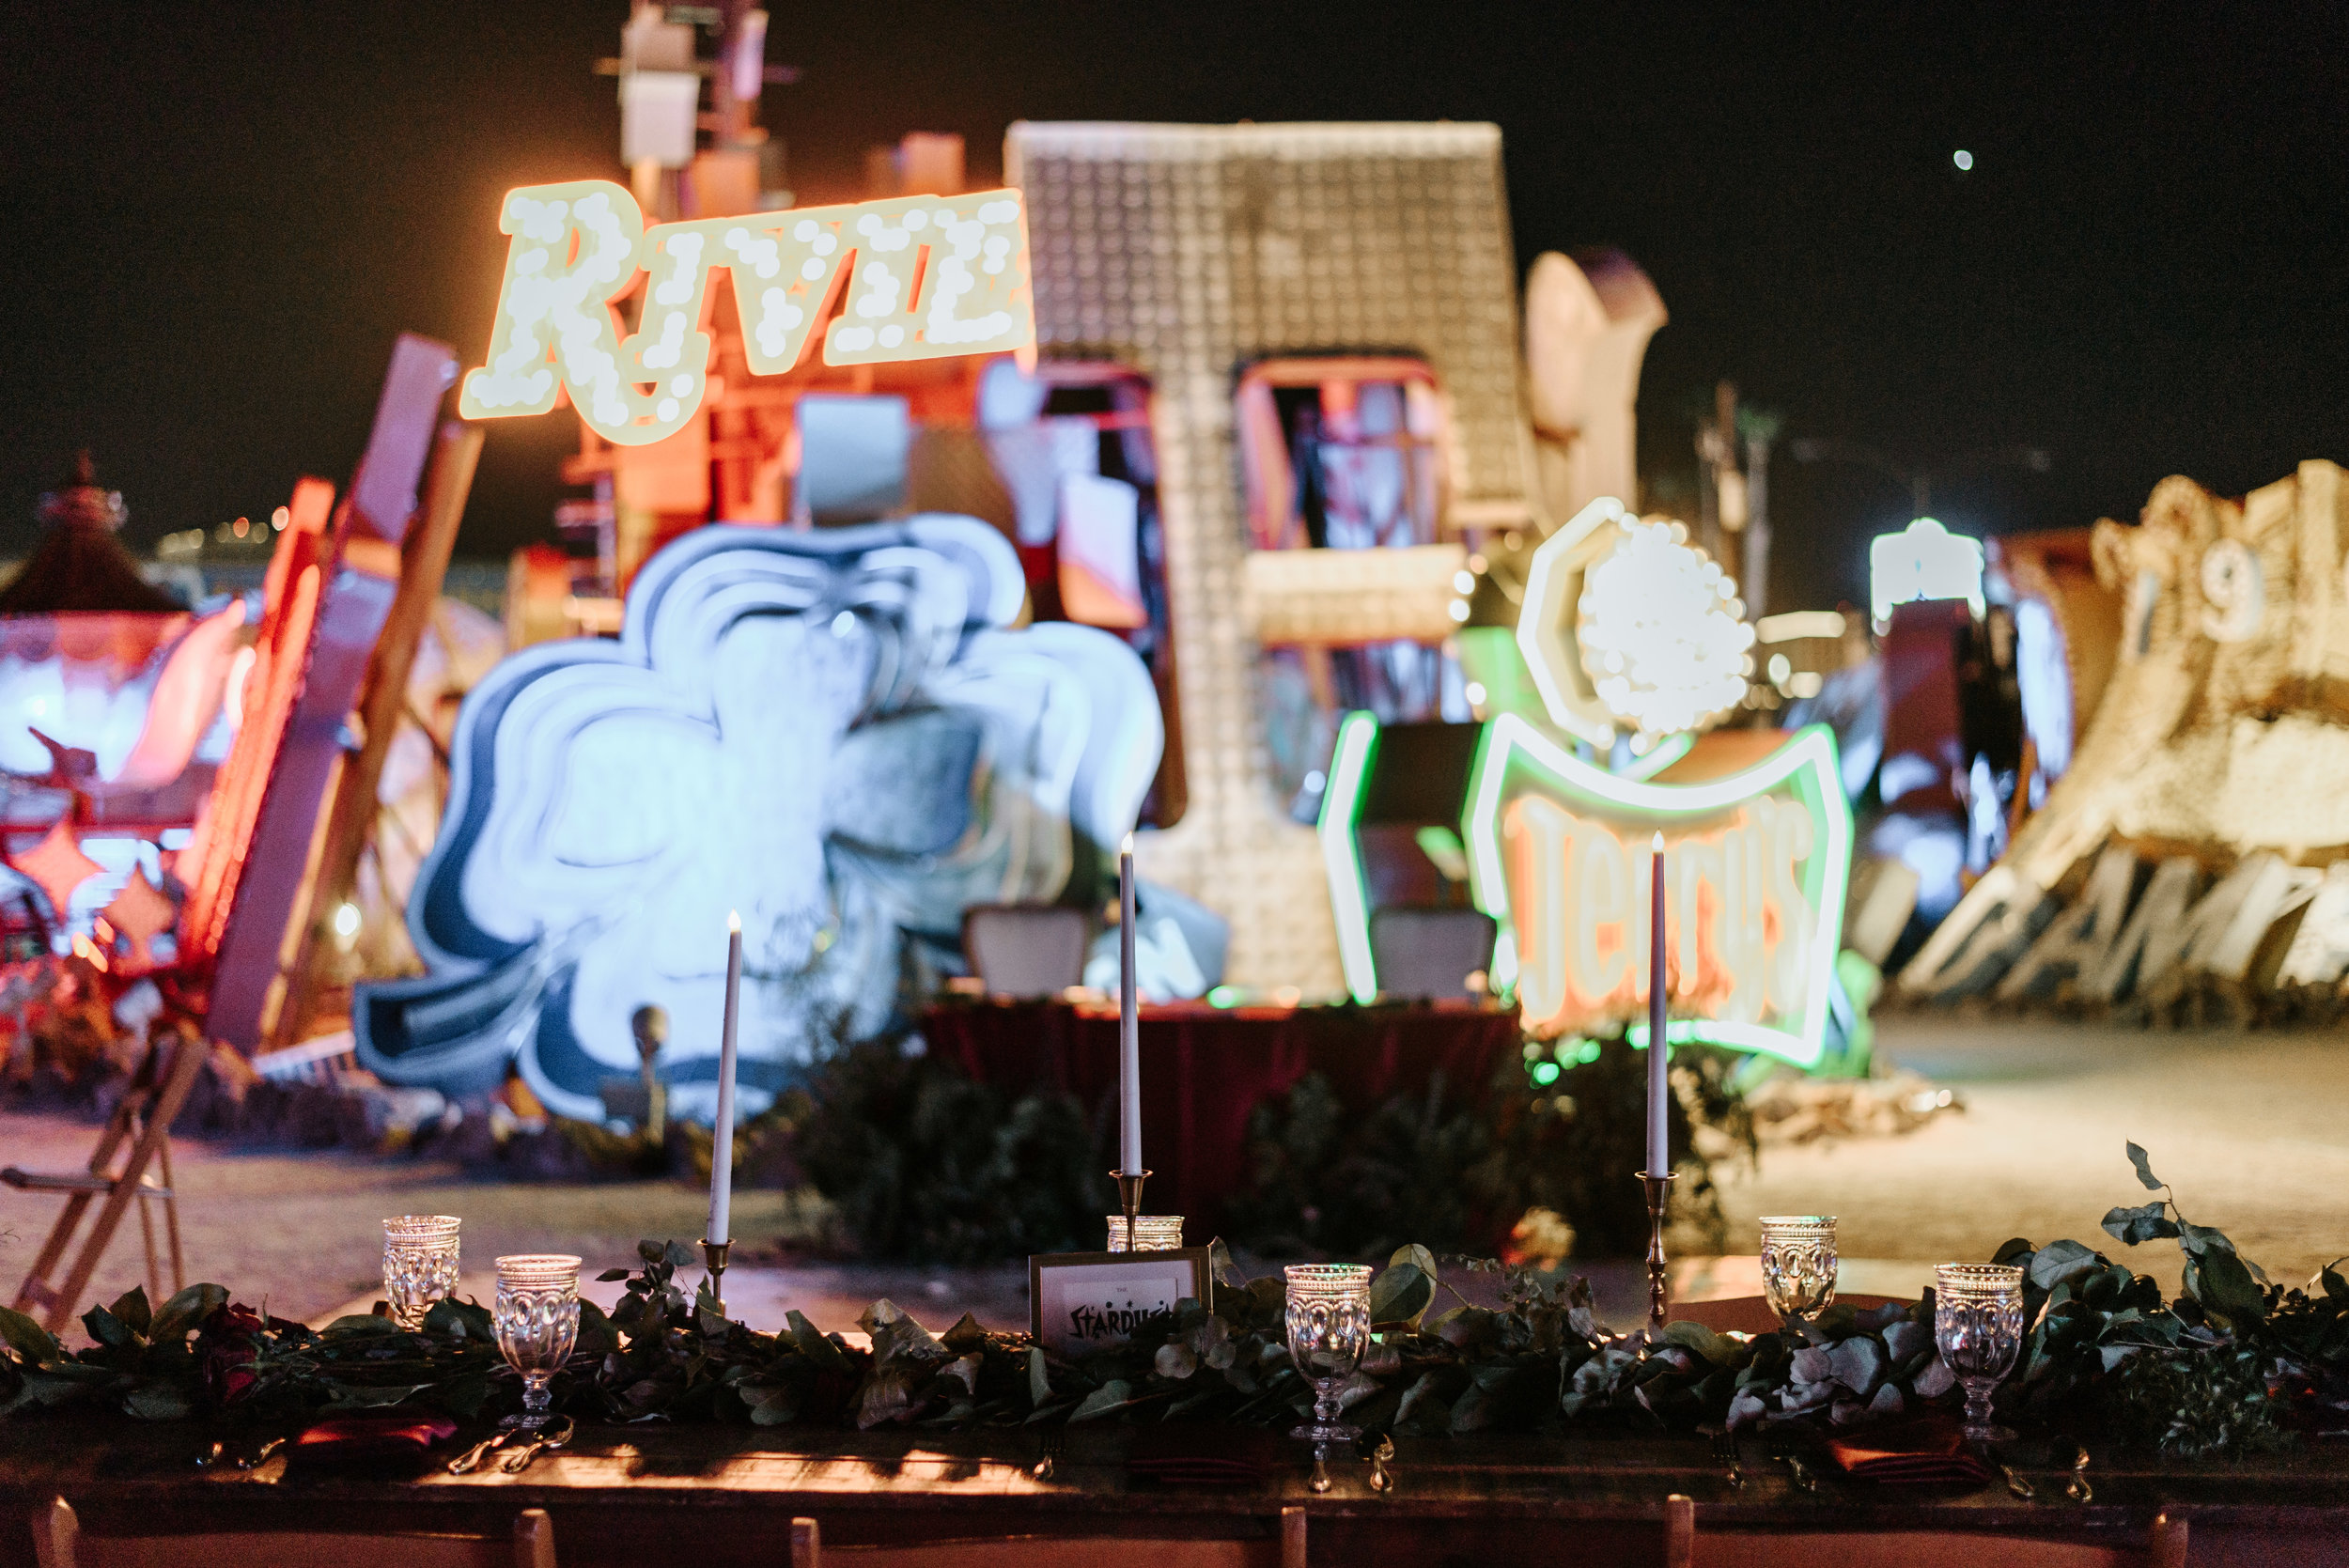 Neon-Museum-Wedding-Las-Vegas-Nevada-Golden-Nugget-Photography-by-V-Ally-and-Dan-7360.jpg